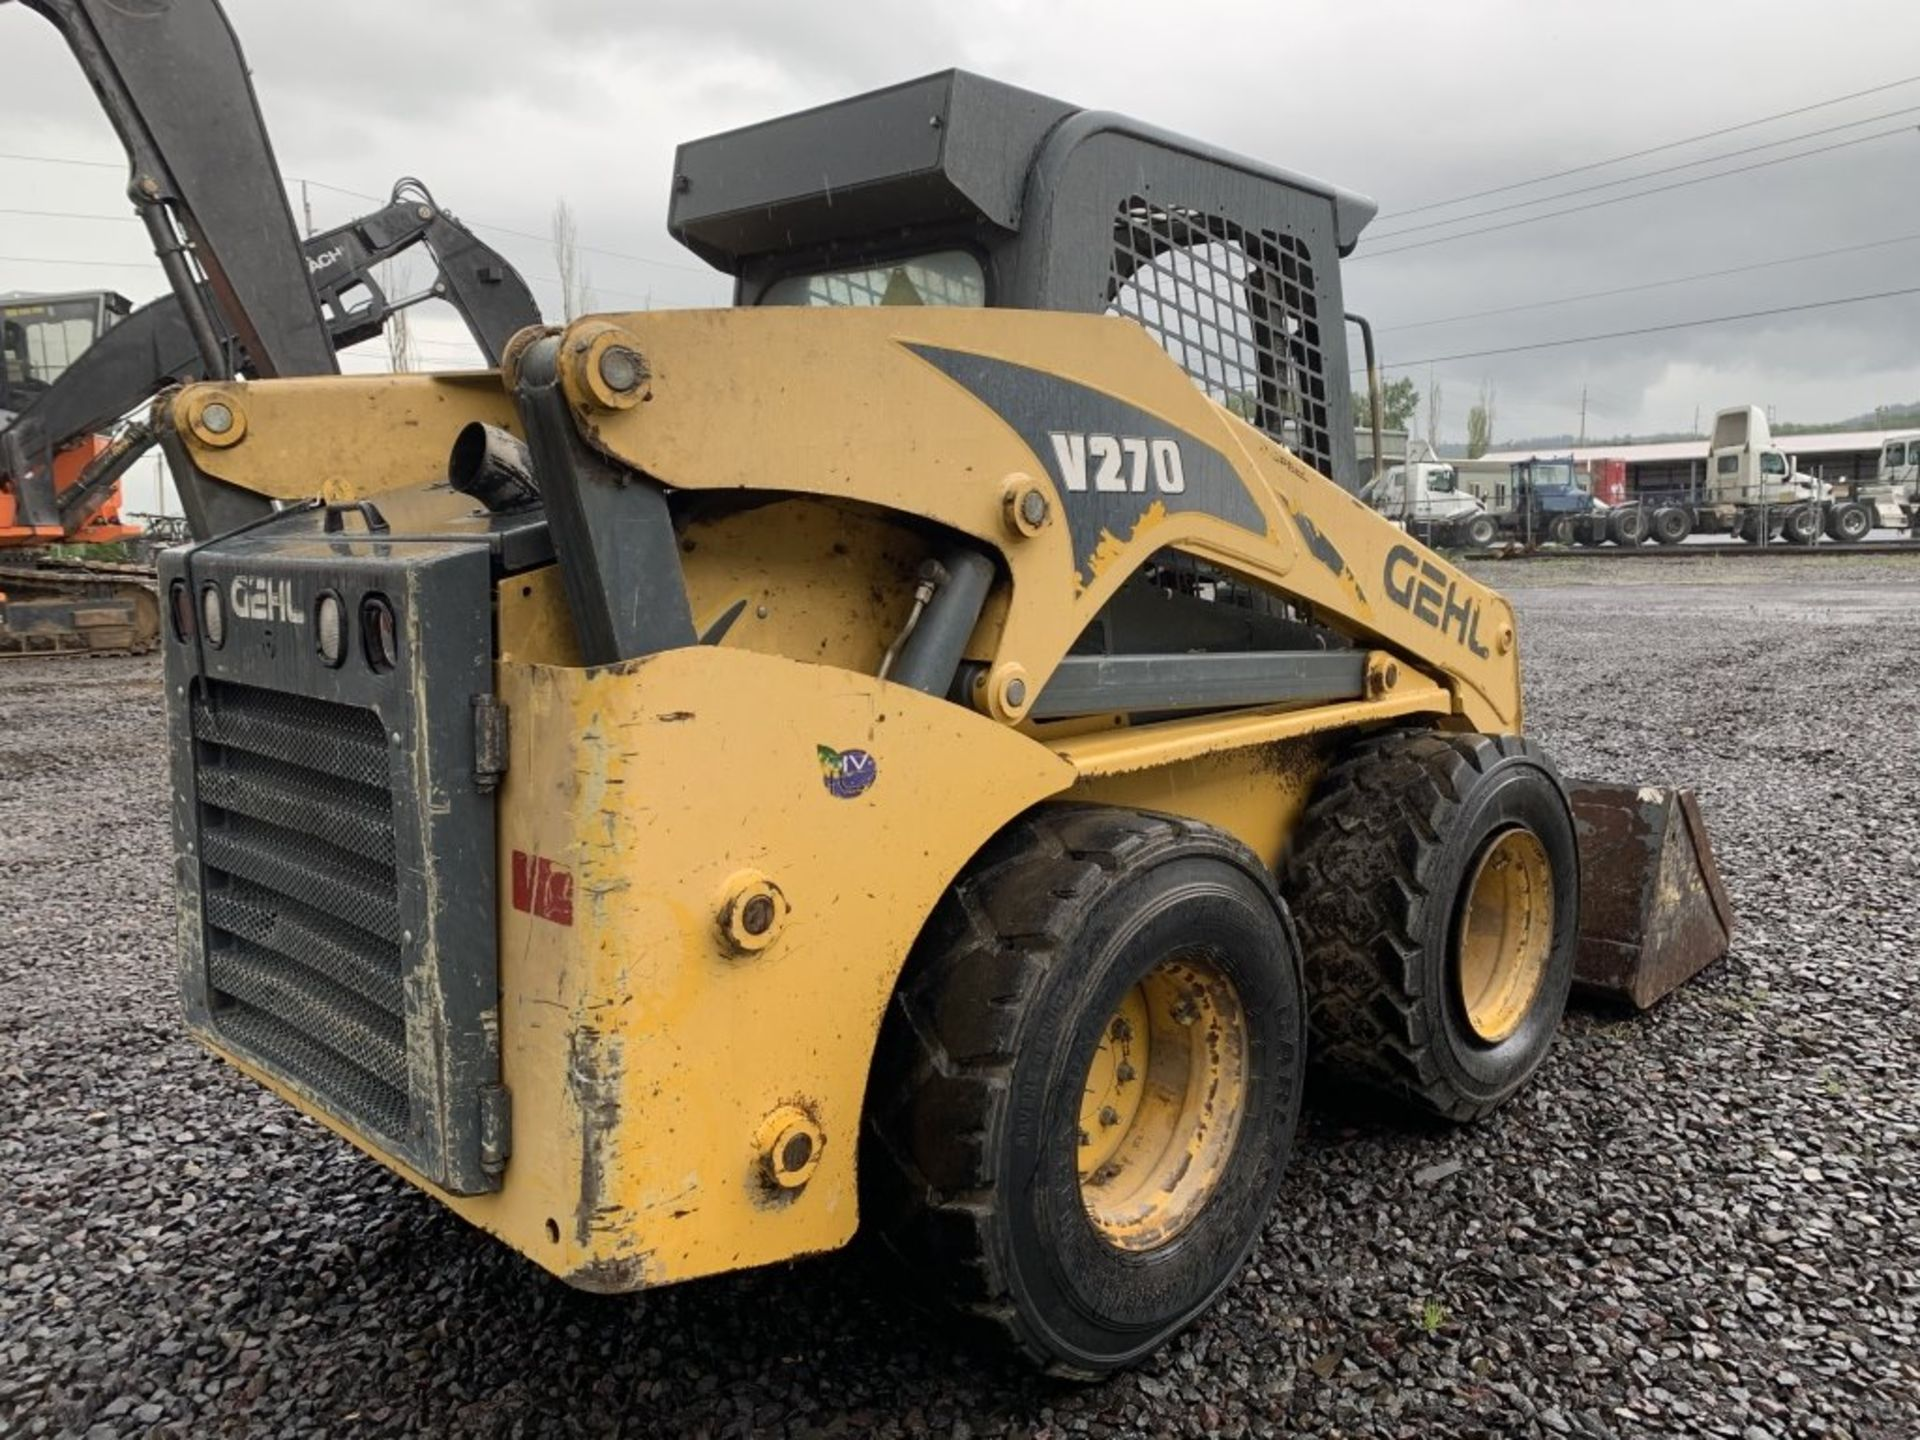 Lot 22 - 2011 Gehl V270 Skid Steer Loader